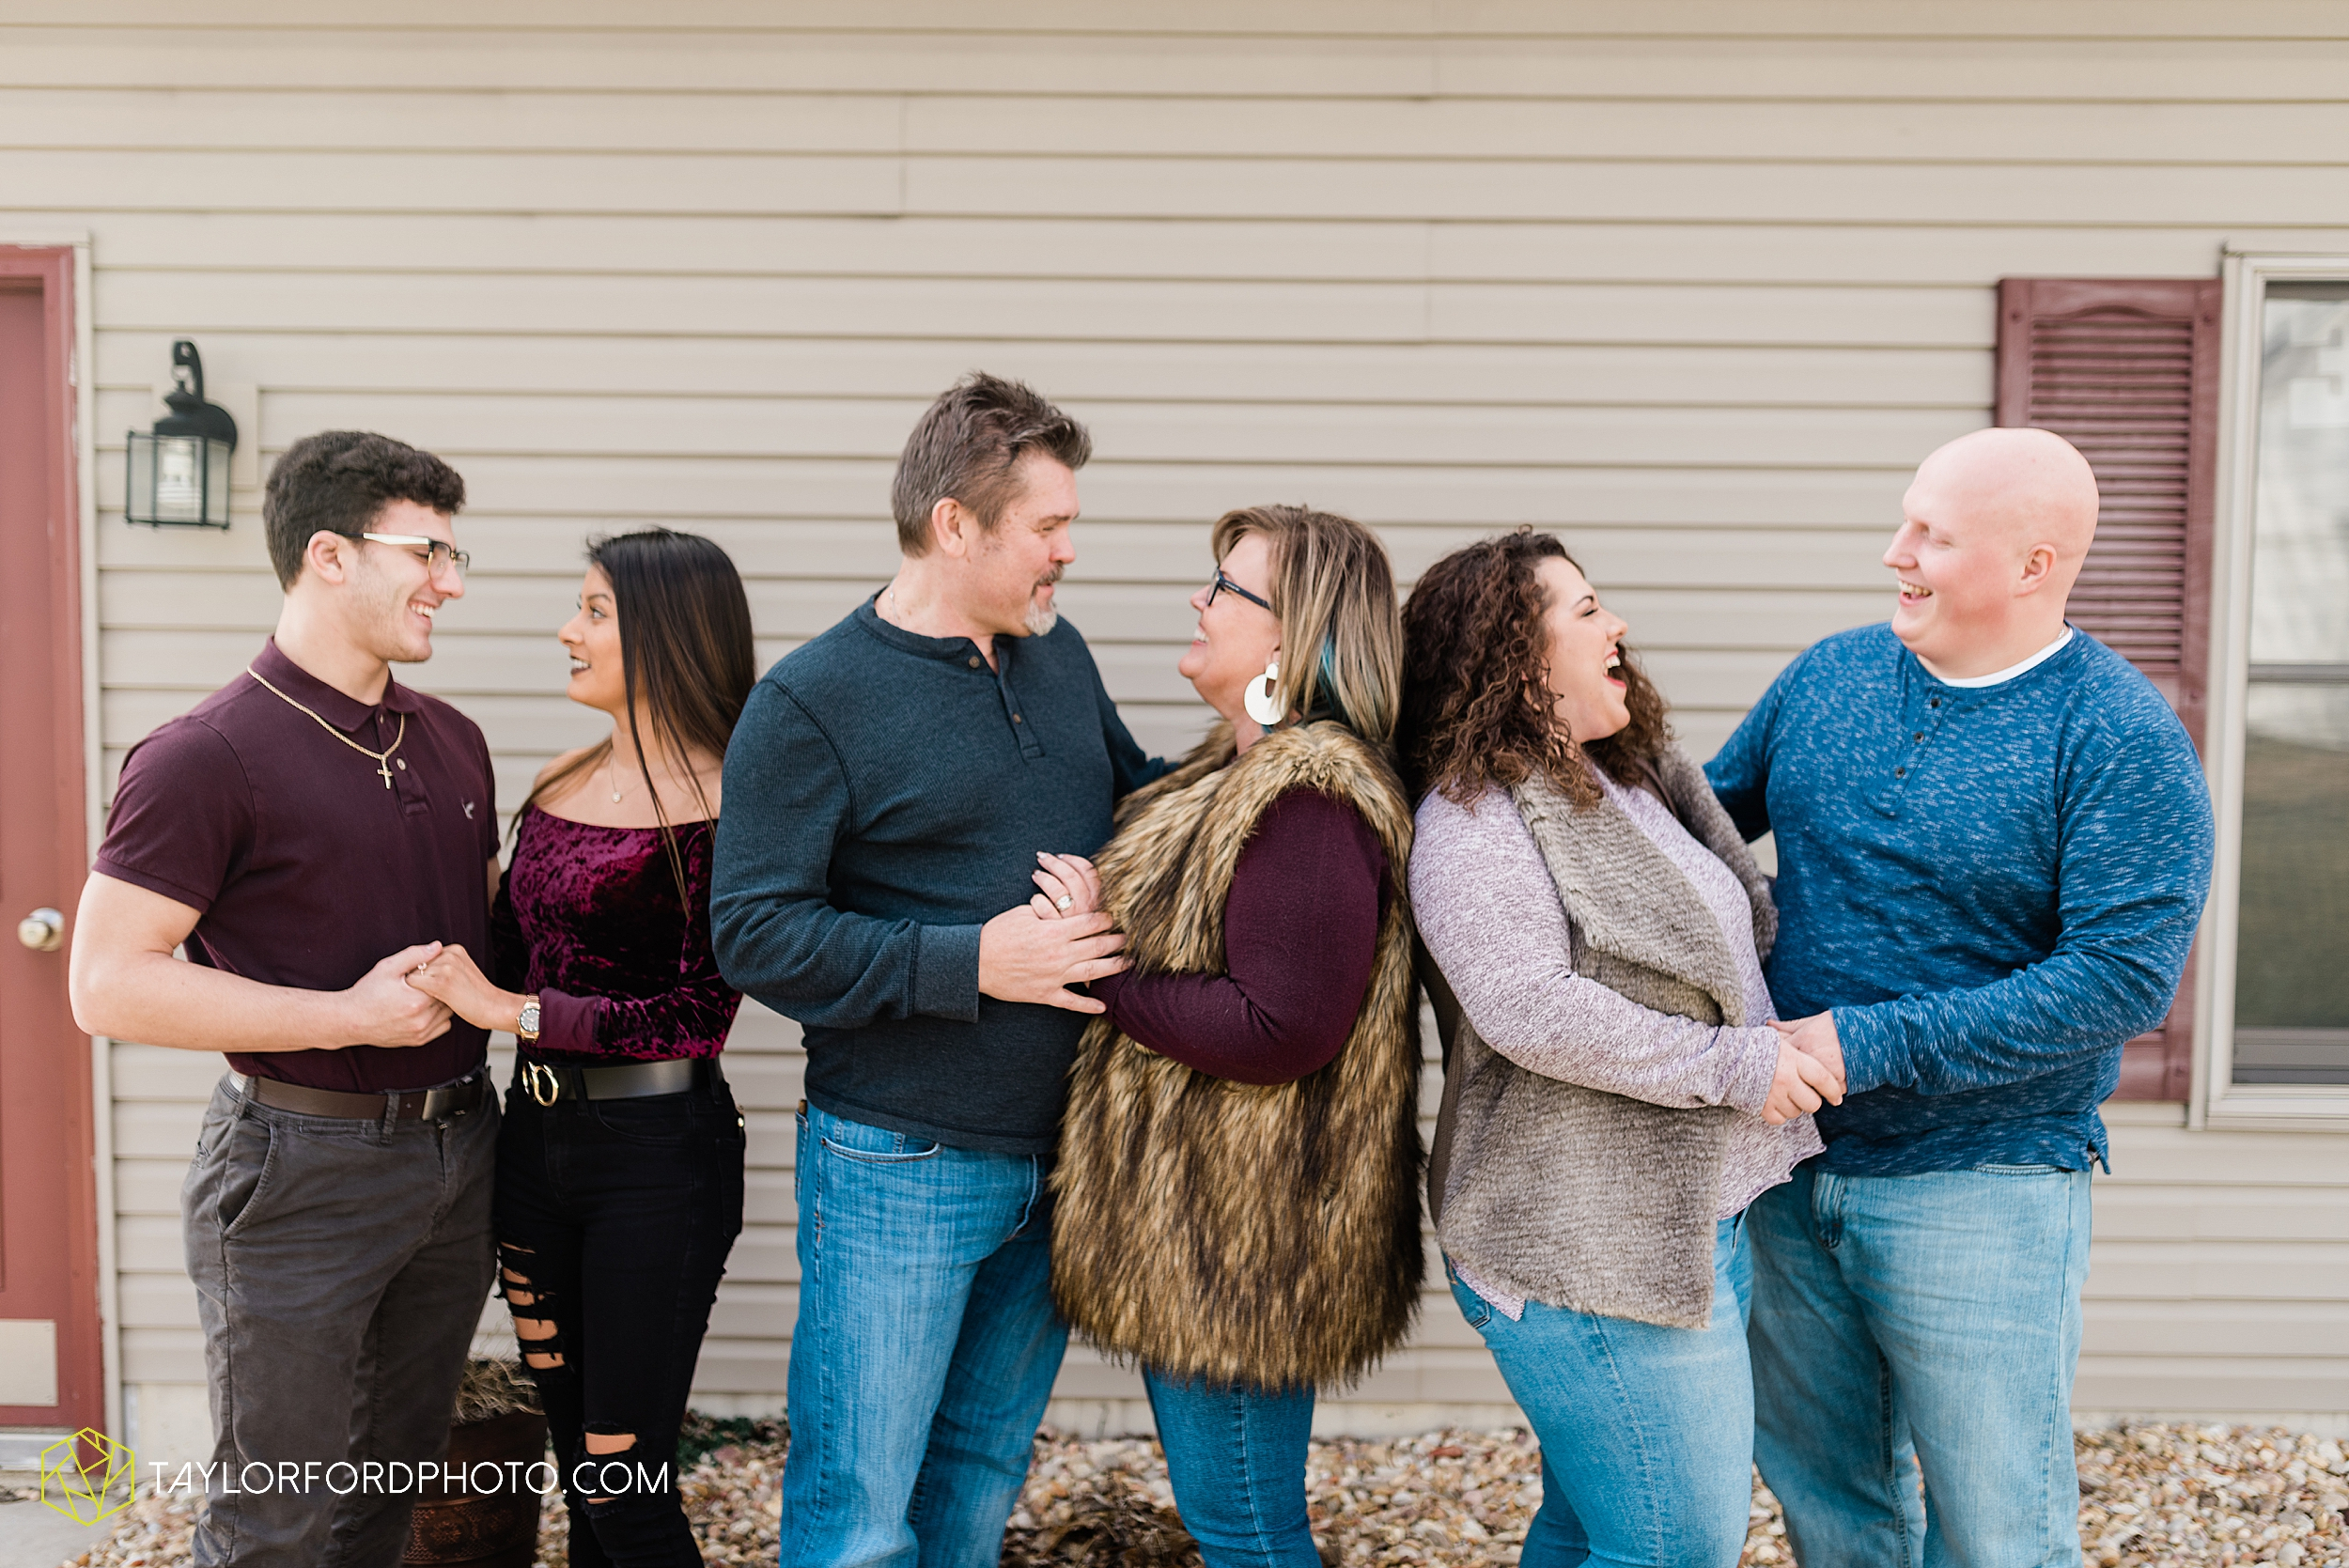 fortney-matthews-extended-family-van-wert-ohio-at-home-family-farm-photography-taylor-ford-hirschy-photographer_2034.jpg